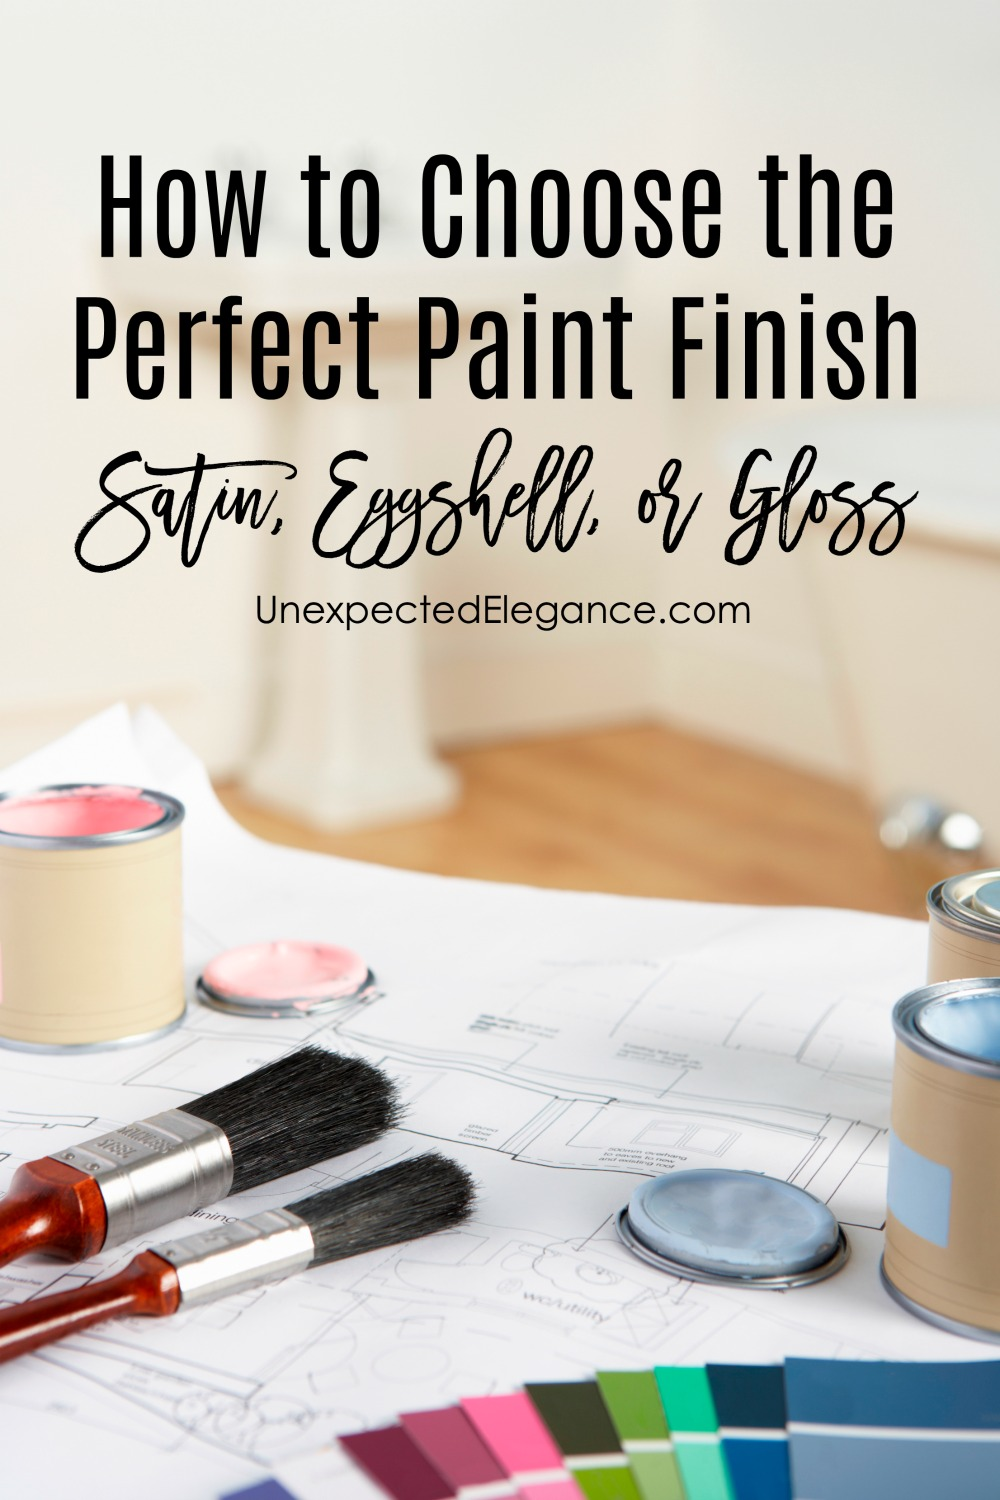 Do you have a room or piece of furniture you need to paint, but keep putting it off because you aren't sure which finish to use? See How to choose the perfect paint finish HERE!